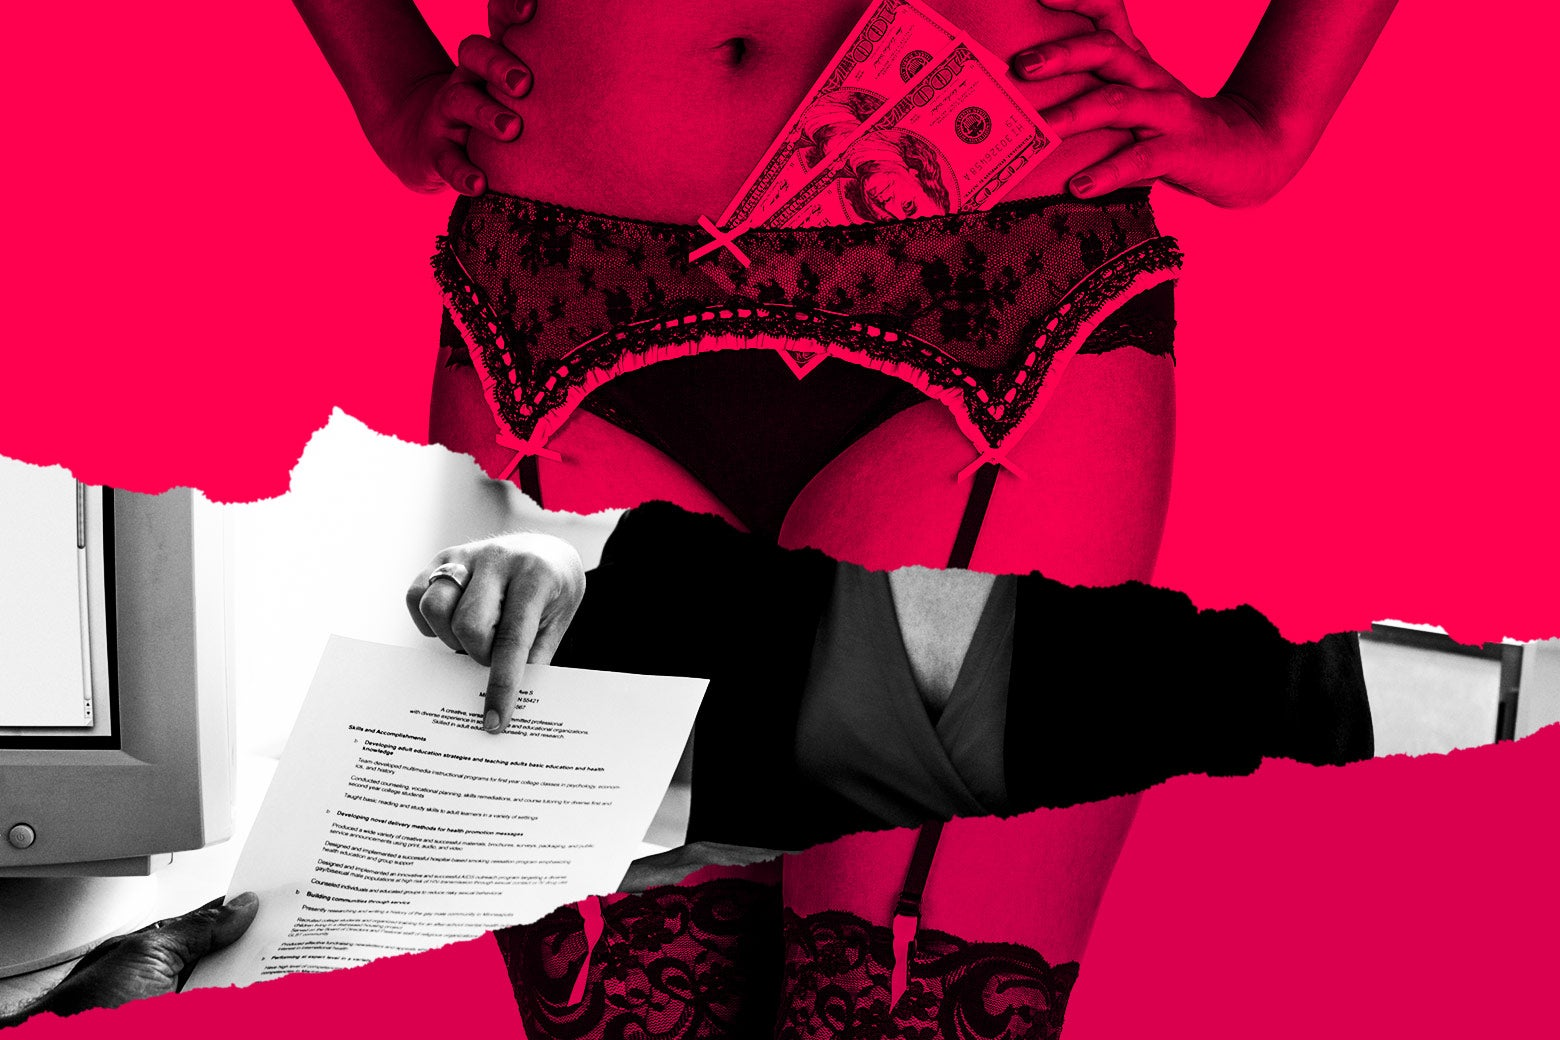 An illustration juxtaposing a sex worker and a job offer letter.